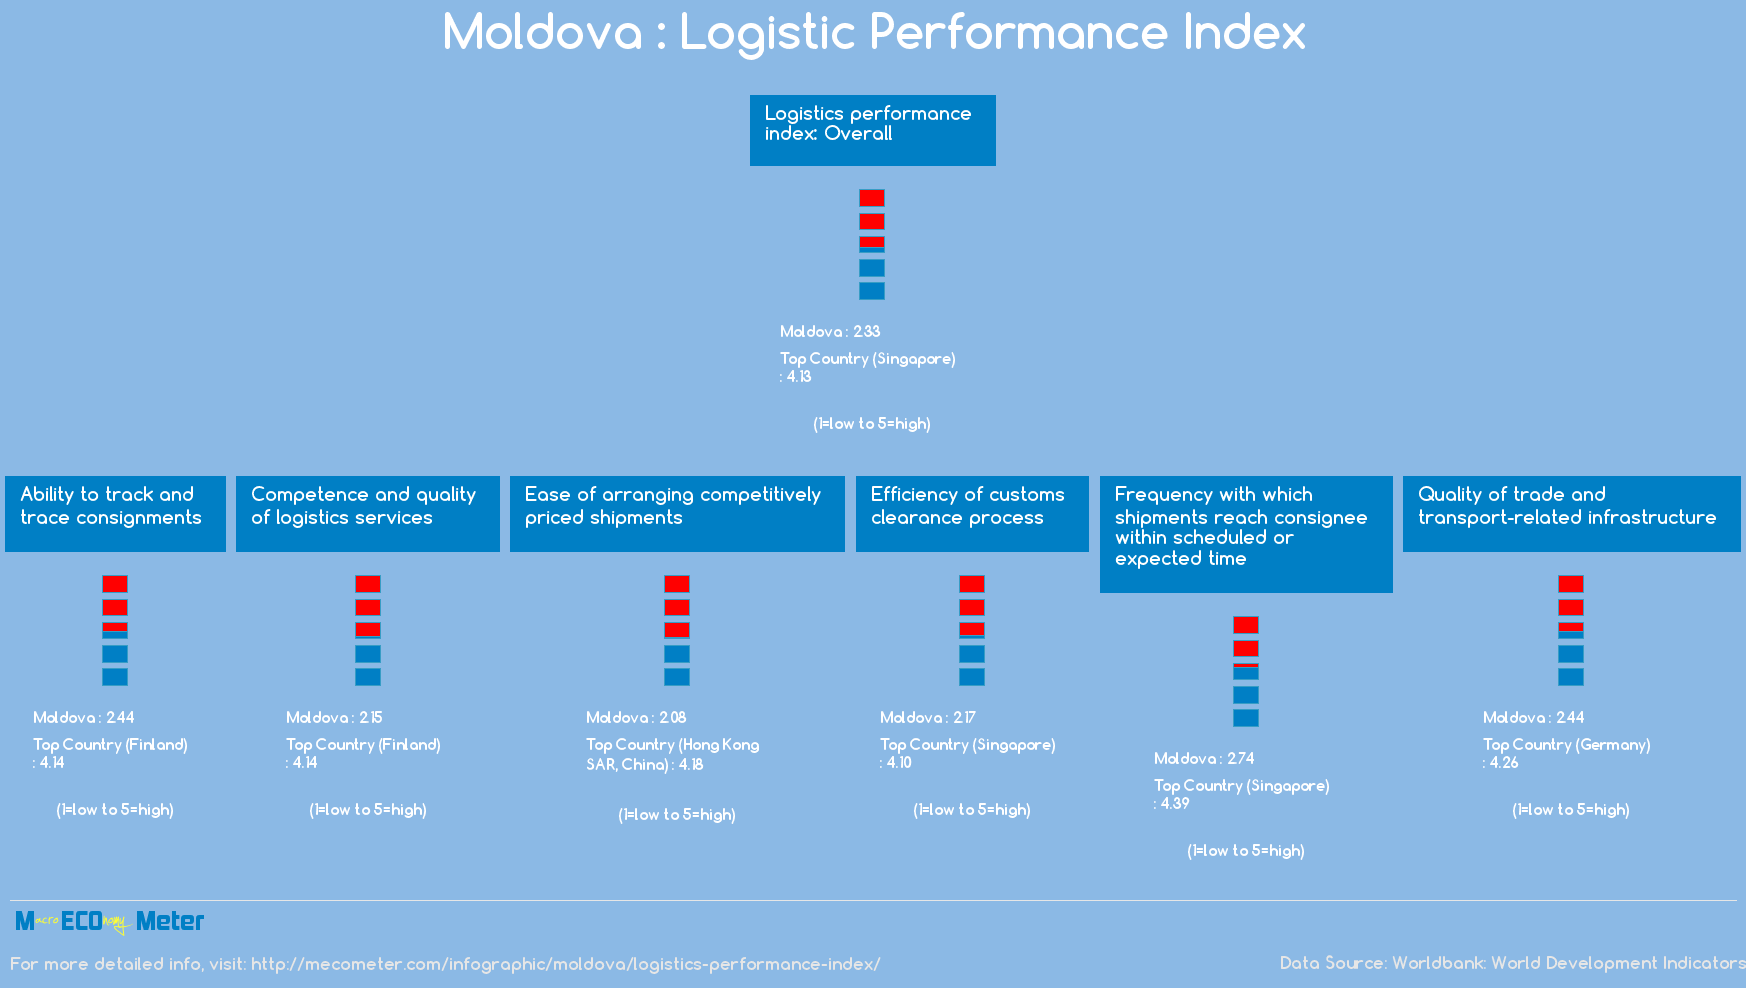 Moldova : Logistic Performance Index